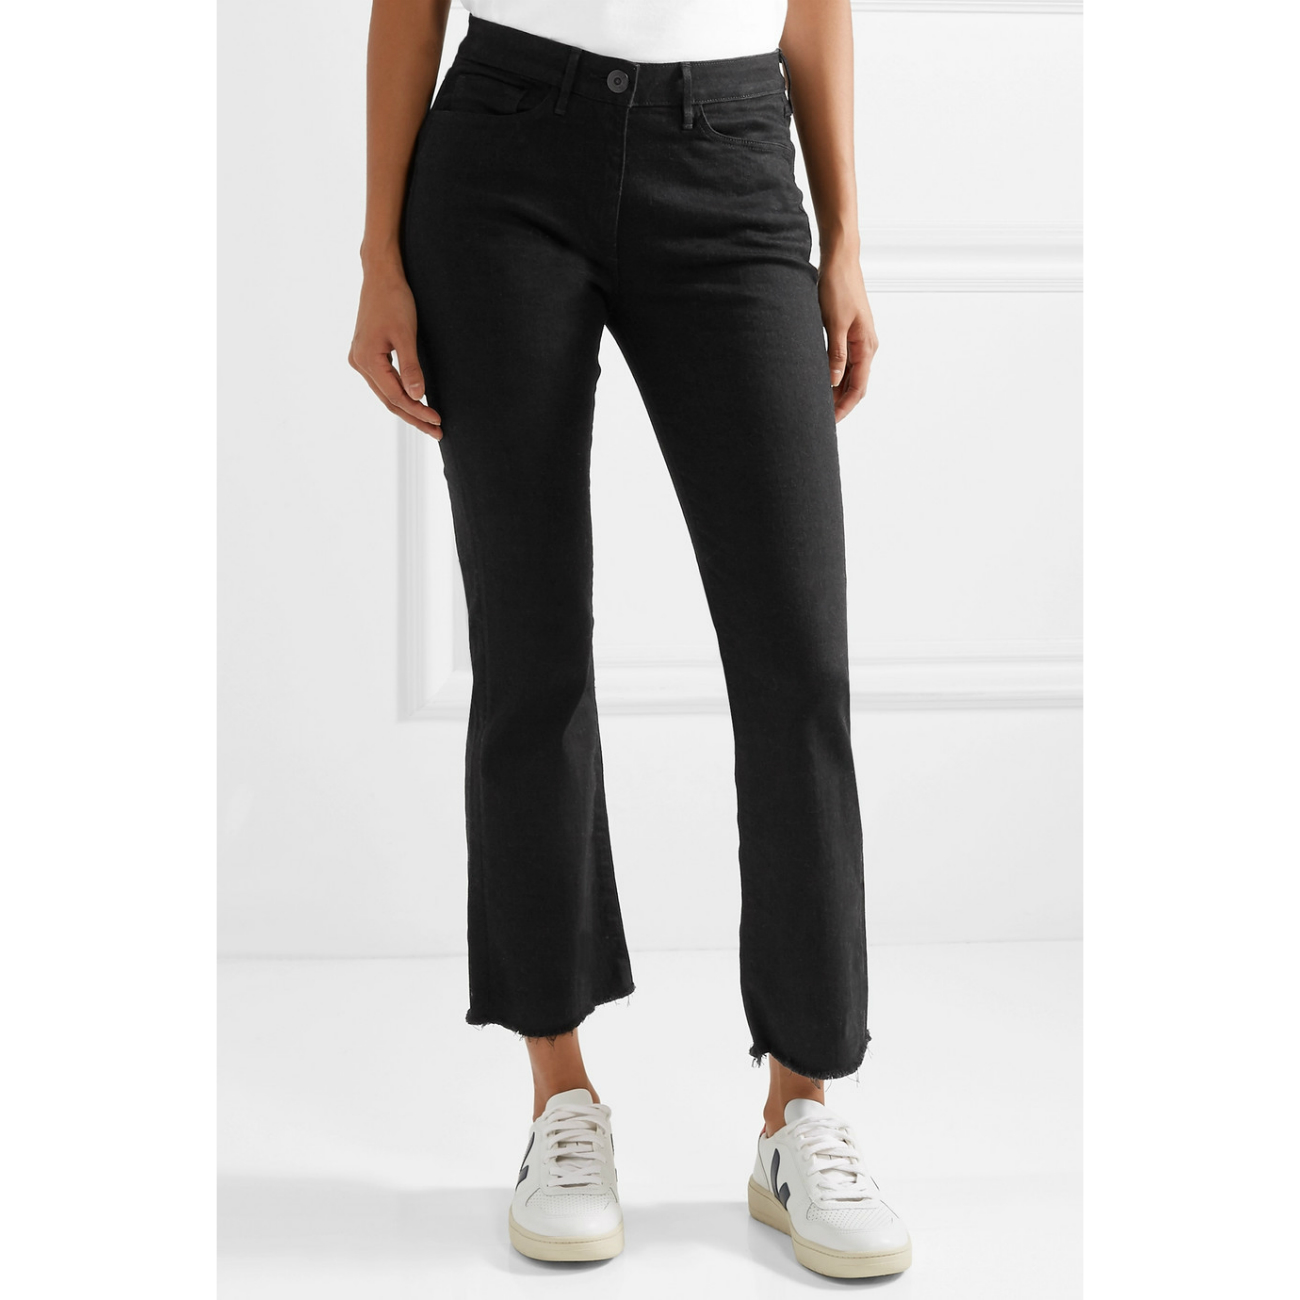 3x1 Crop Distressed Mid-Rise Flare Jeans